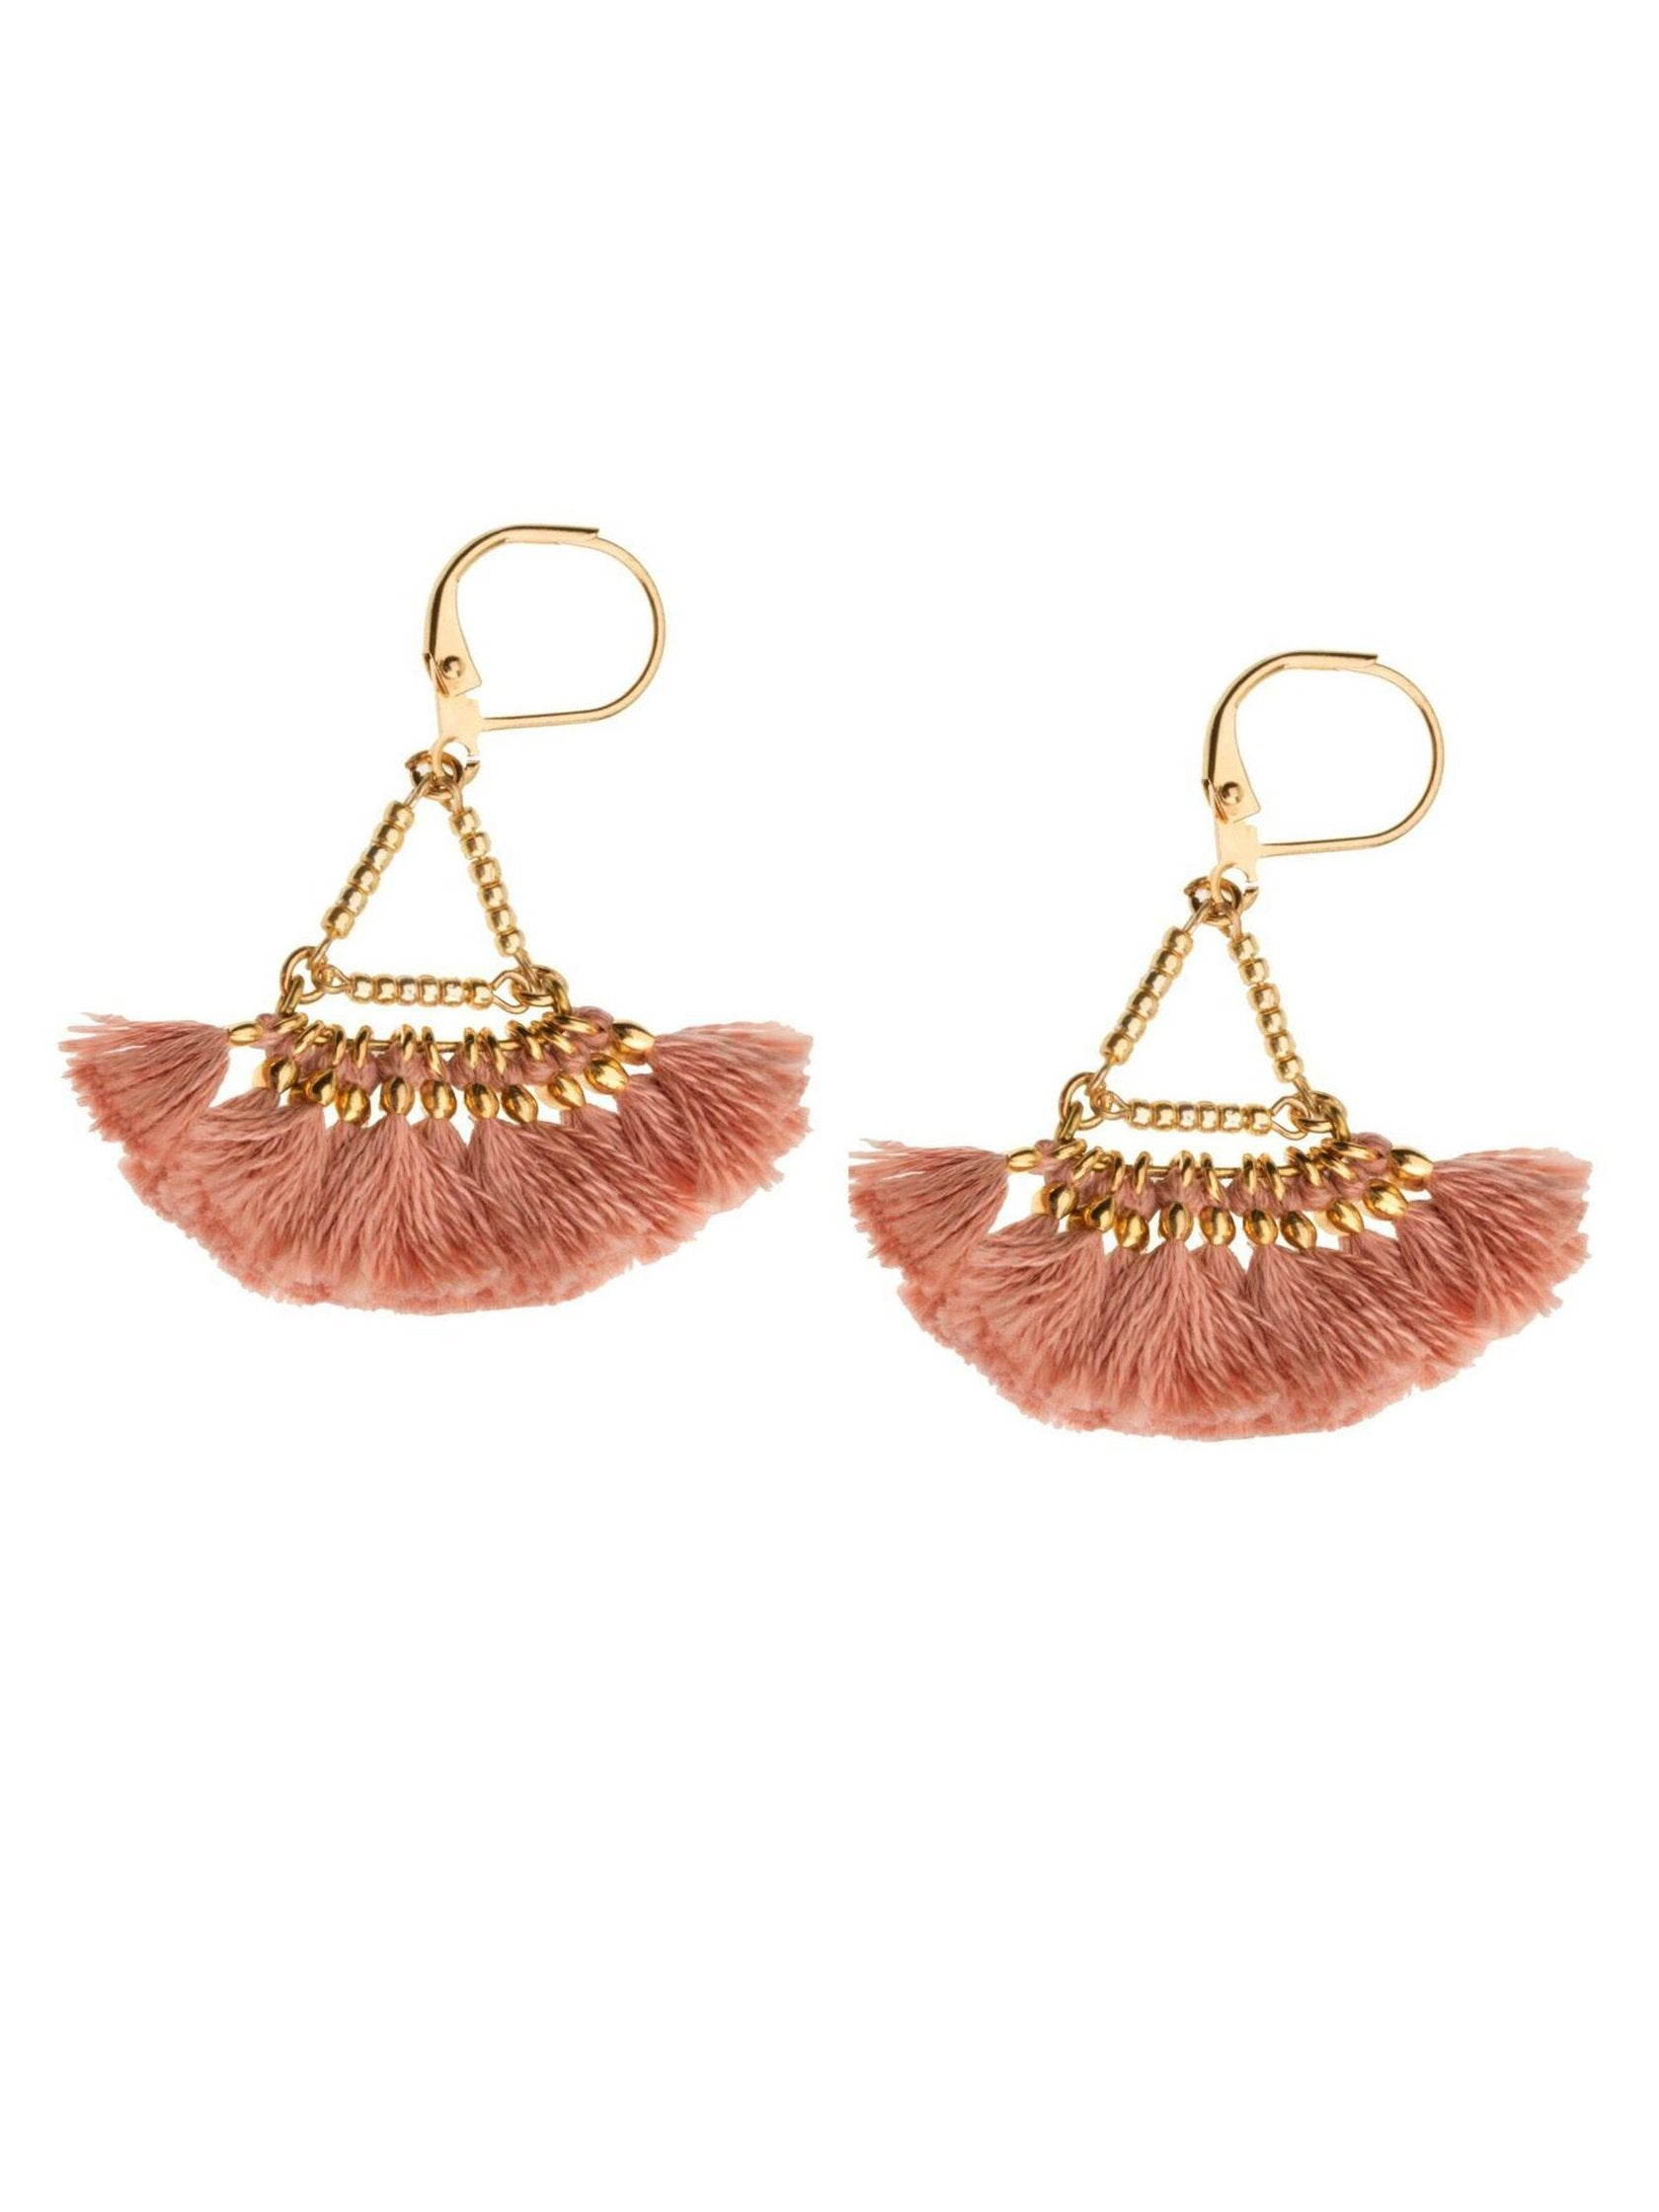 Girl wearing a earrings rental from Shashi called Lilu Tassel Earring